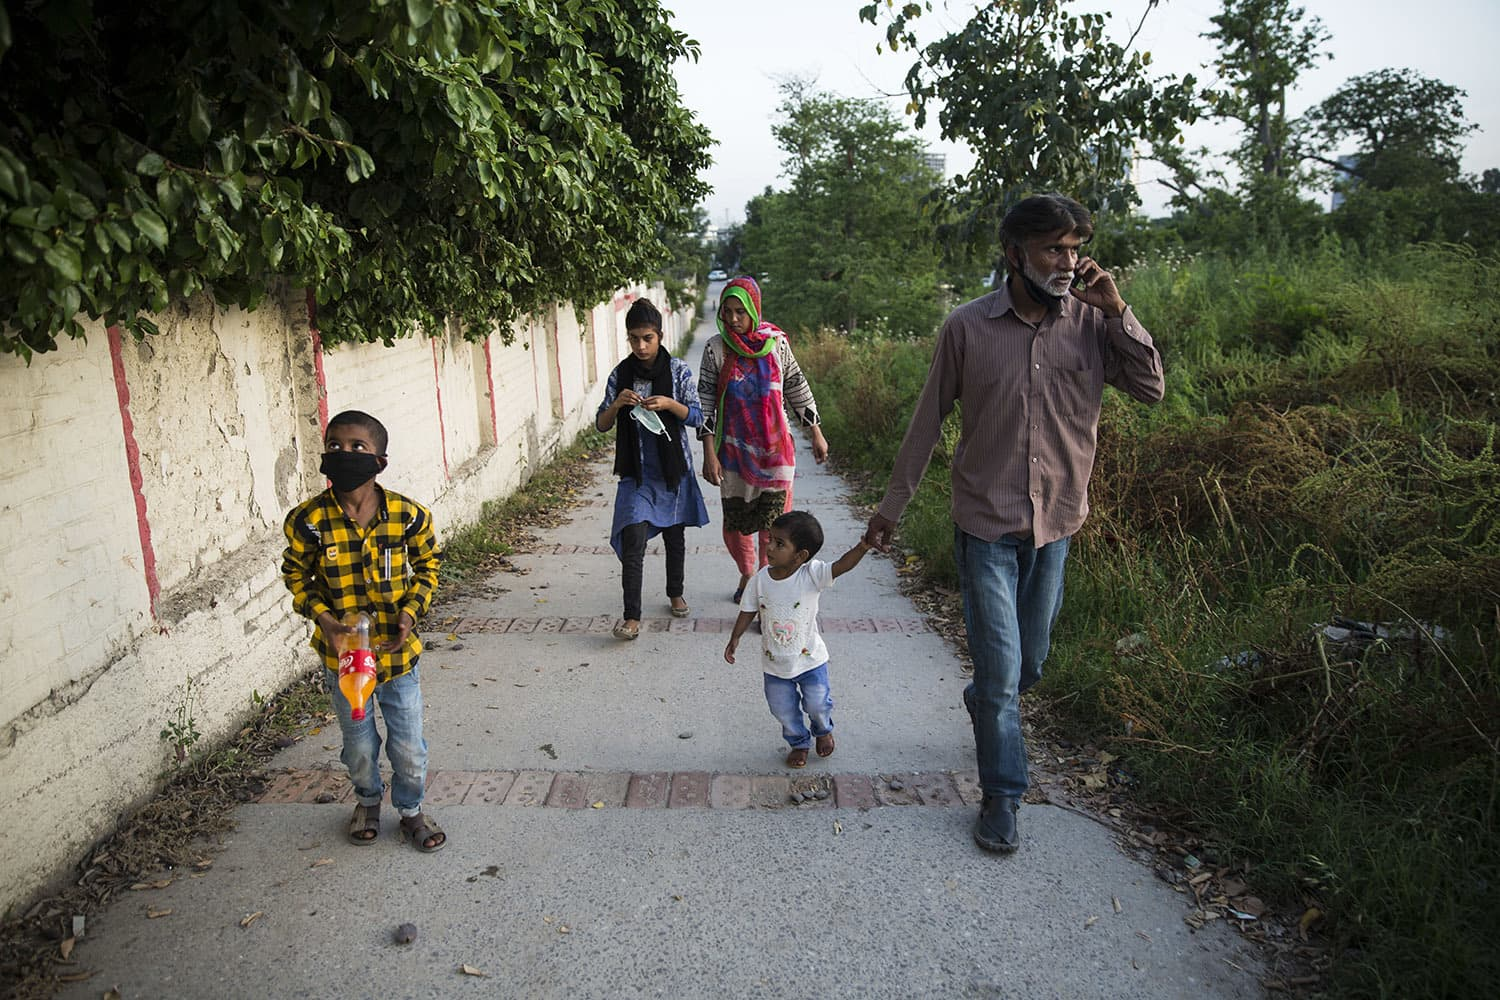 Arif Masih walks his family to the nearby park, an activity they do on a daily basis because they get tired of staying in their one bedroom, April 30, 2020 in Islamabad.